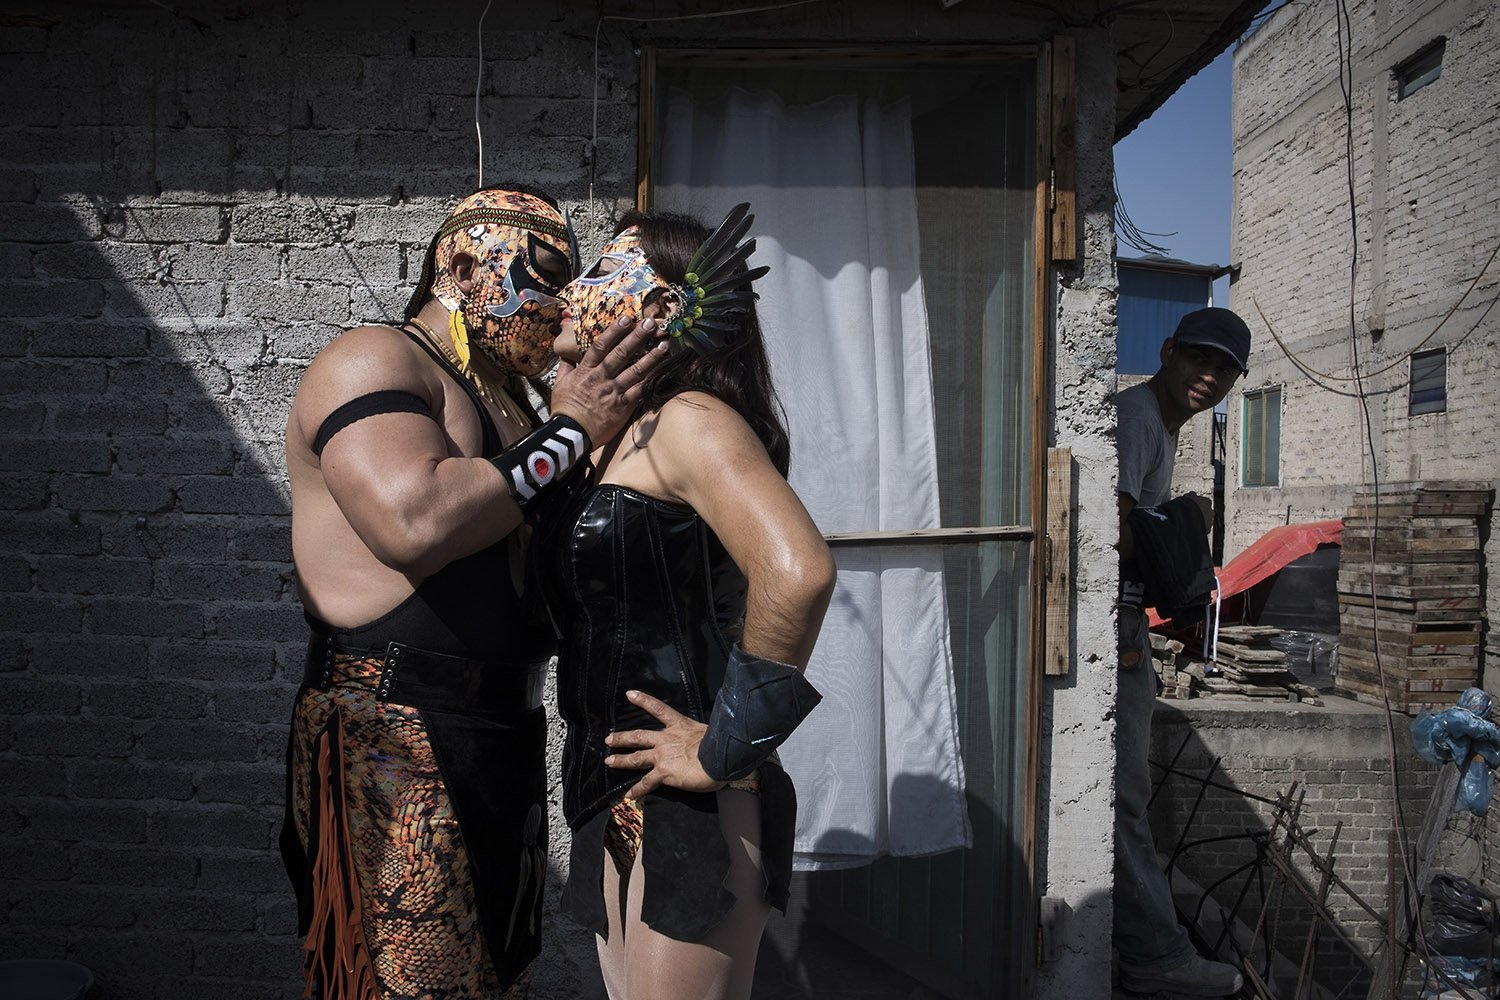 Xenia kissing her new husband in the backyard of their house in Mexico City, while her third son is watching them. Her first husband was abusive and didn't allow her to fight. It took her 14 years to get out from that marriage and get back in the ring. Here she met her new husband, 20 years her junior